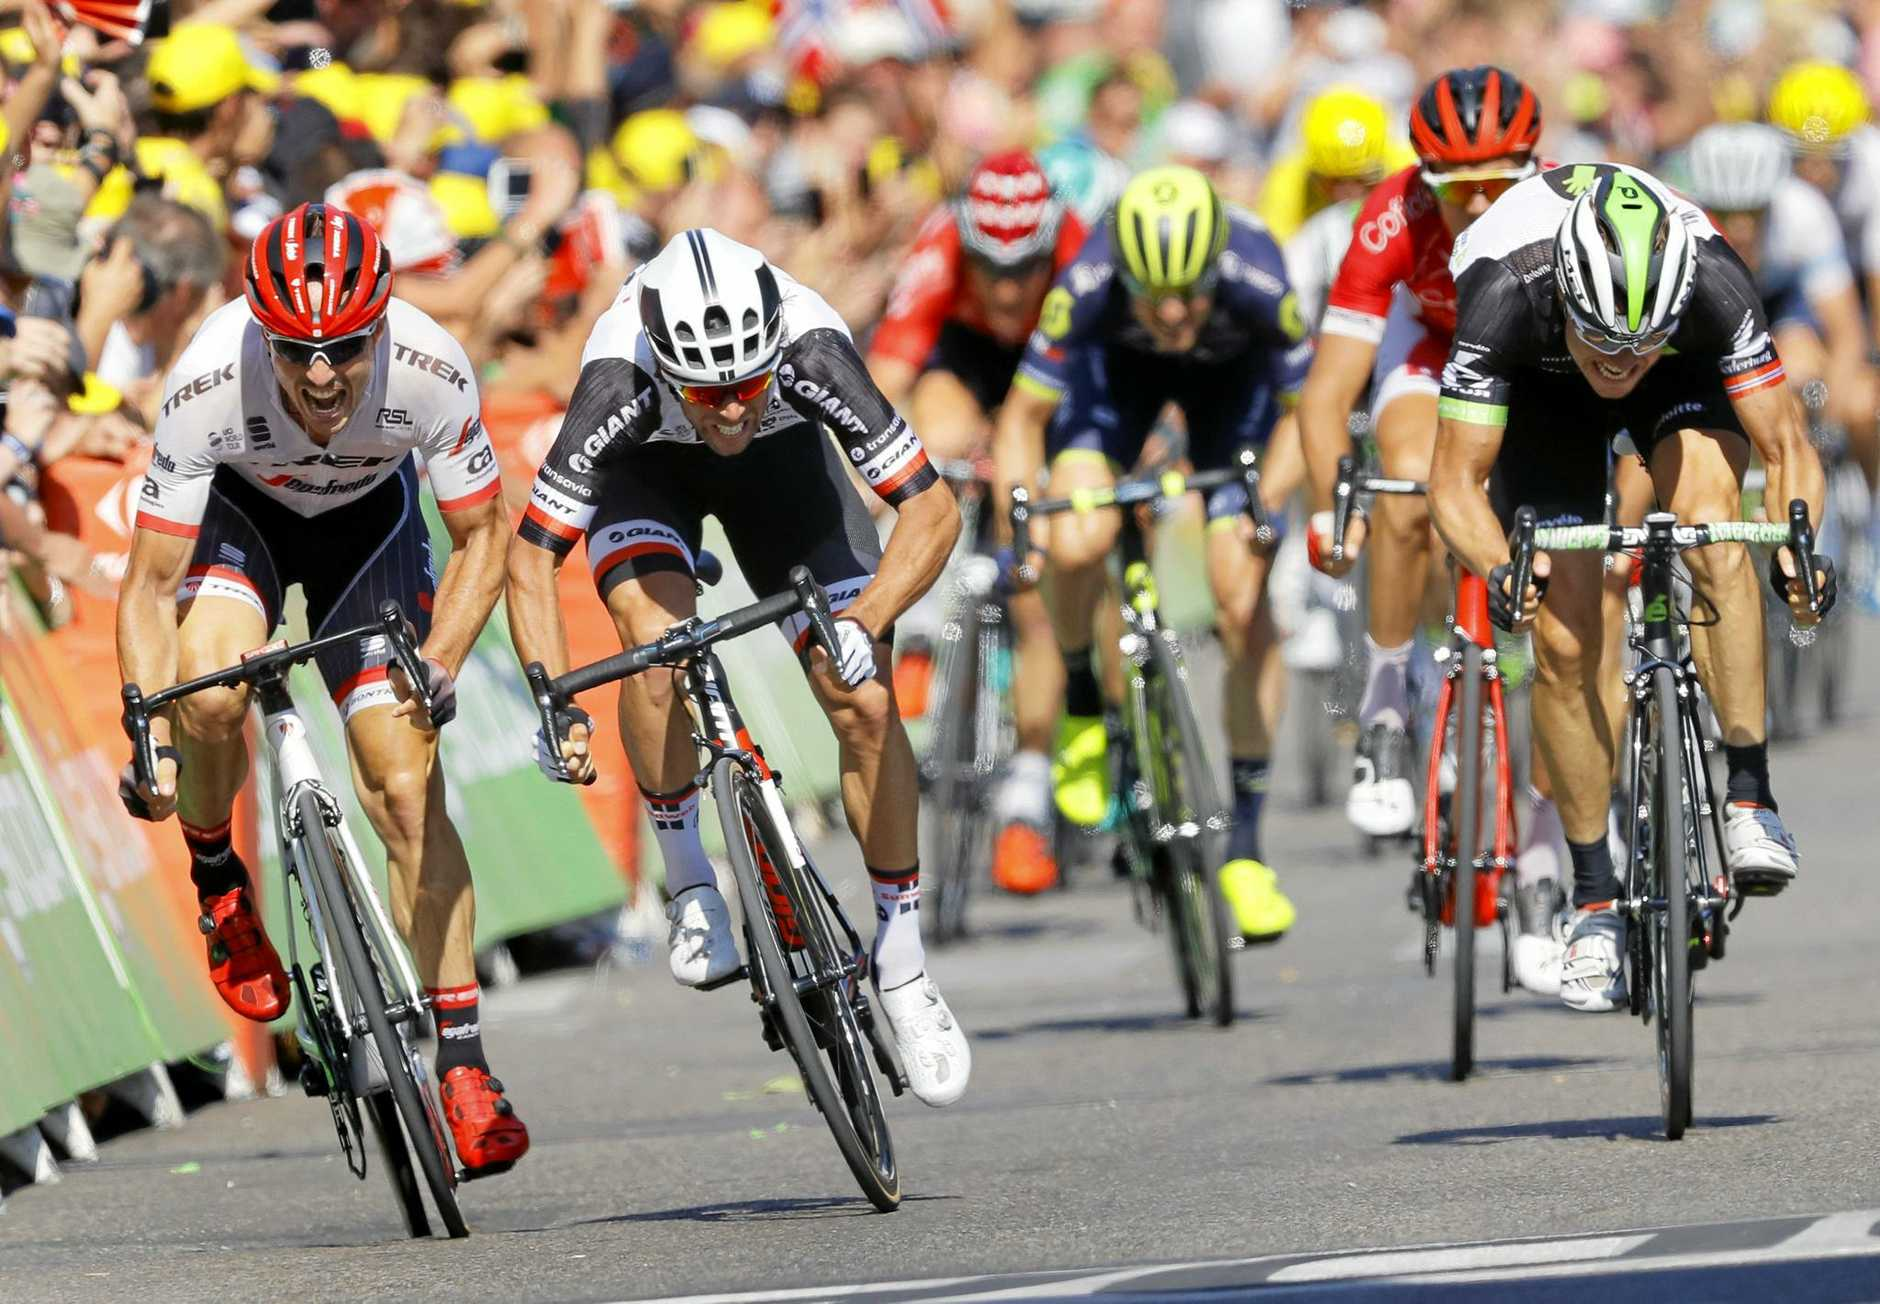 Matthews, Team Dimension Data rider Edvald Boasson Hagen (R) of Norway and Trek Segafredo team rider John Degenkolb (L) of Germany sprint for the win